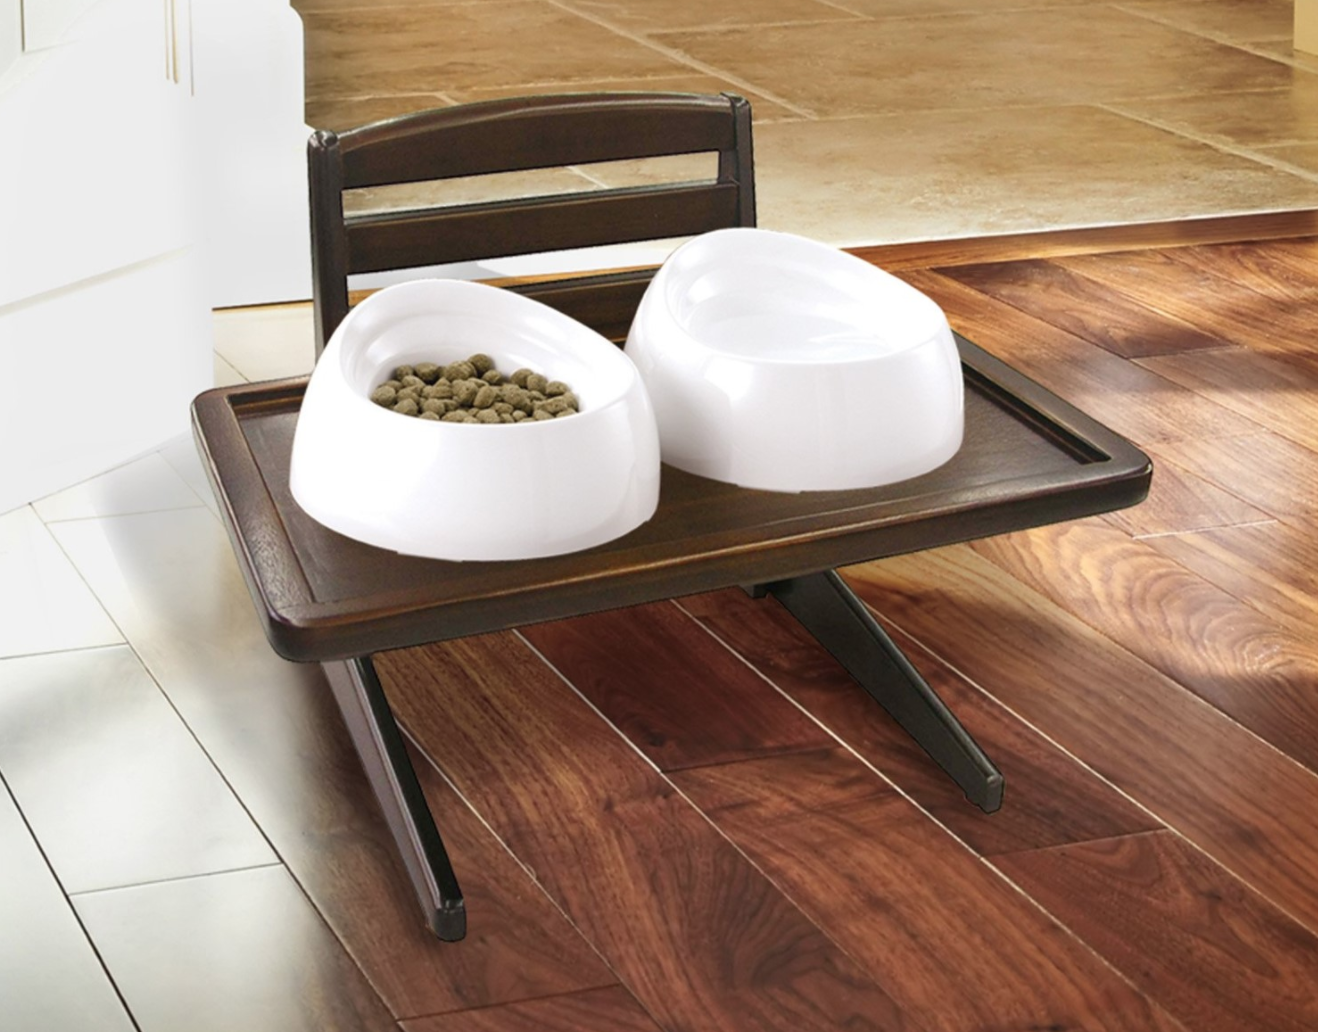 A doggy dining tray in a mahogany finish so your pup can eat like the sophisticated family member he really is.